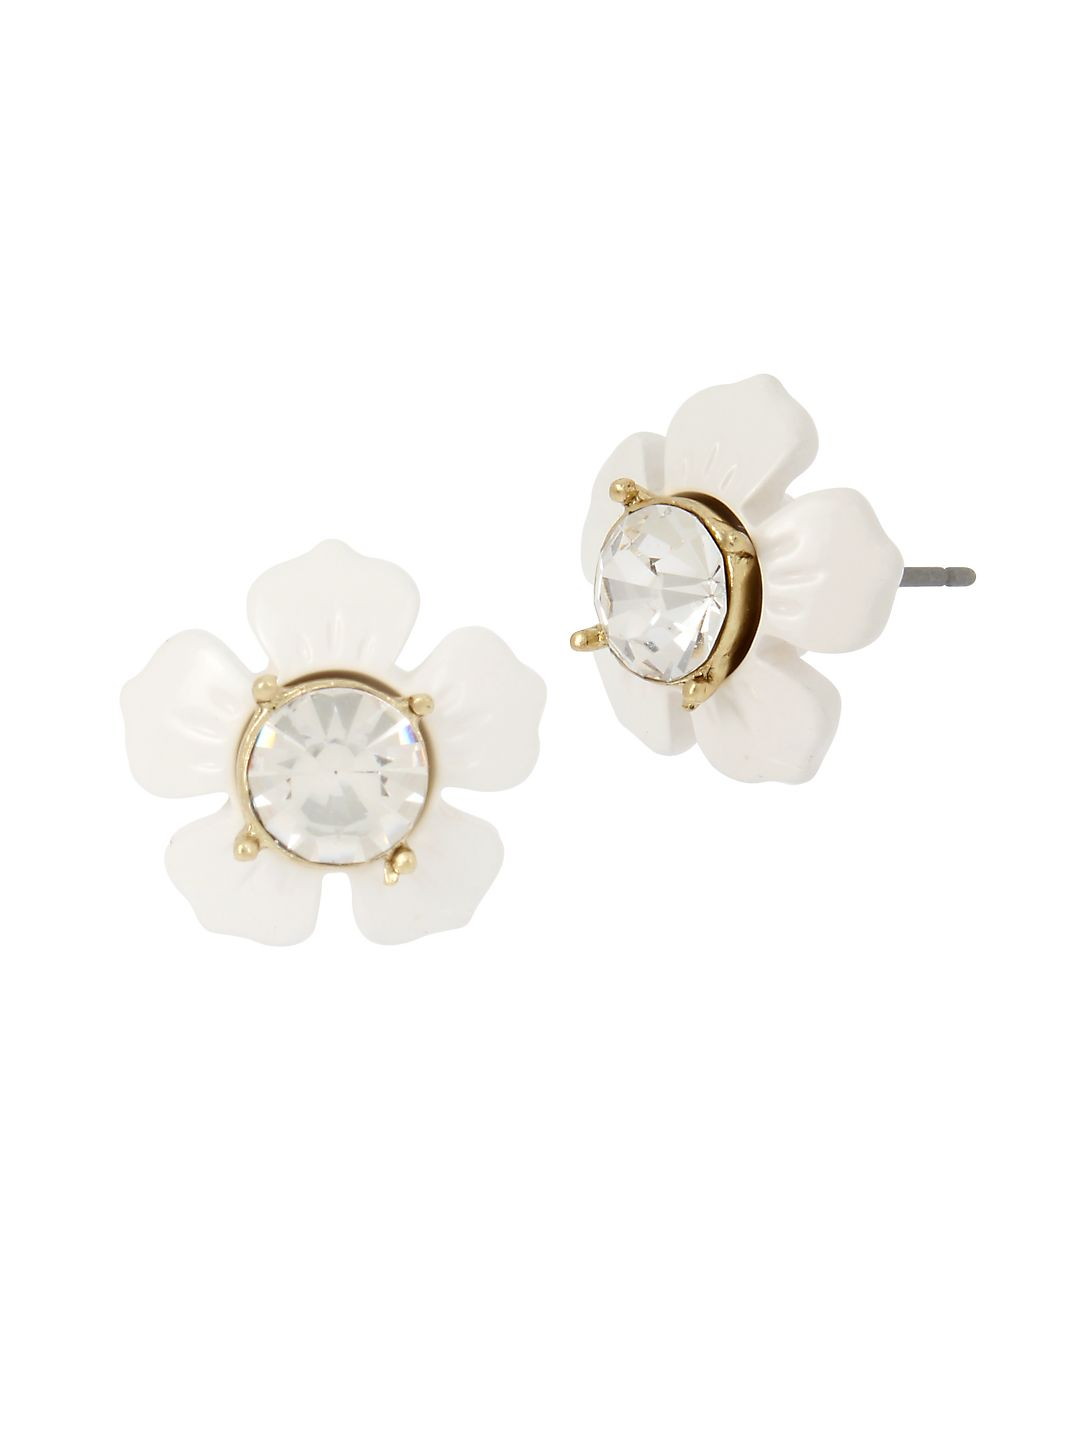 Vintage Floral White Daisy Crystal Stud Earrings